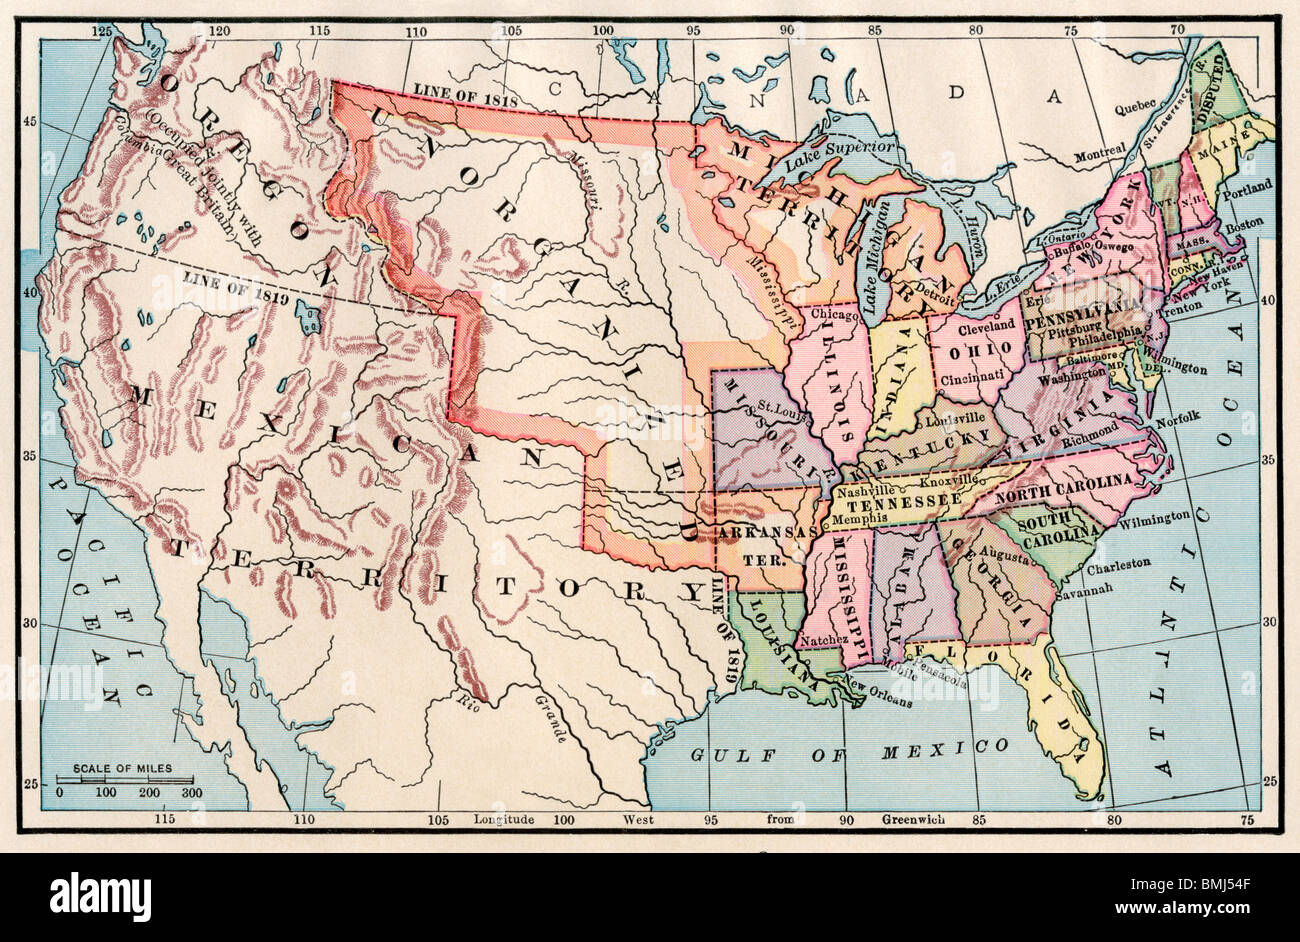 1830 Us Map.Map Of The United States In 1830 Color Lithograph Stock Photo